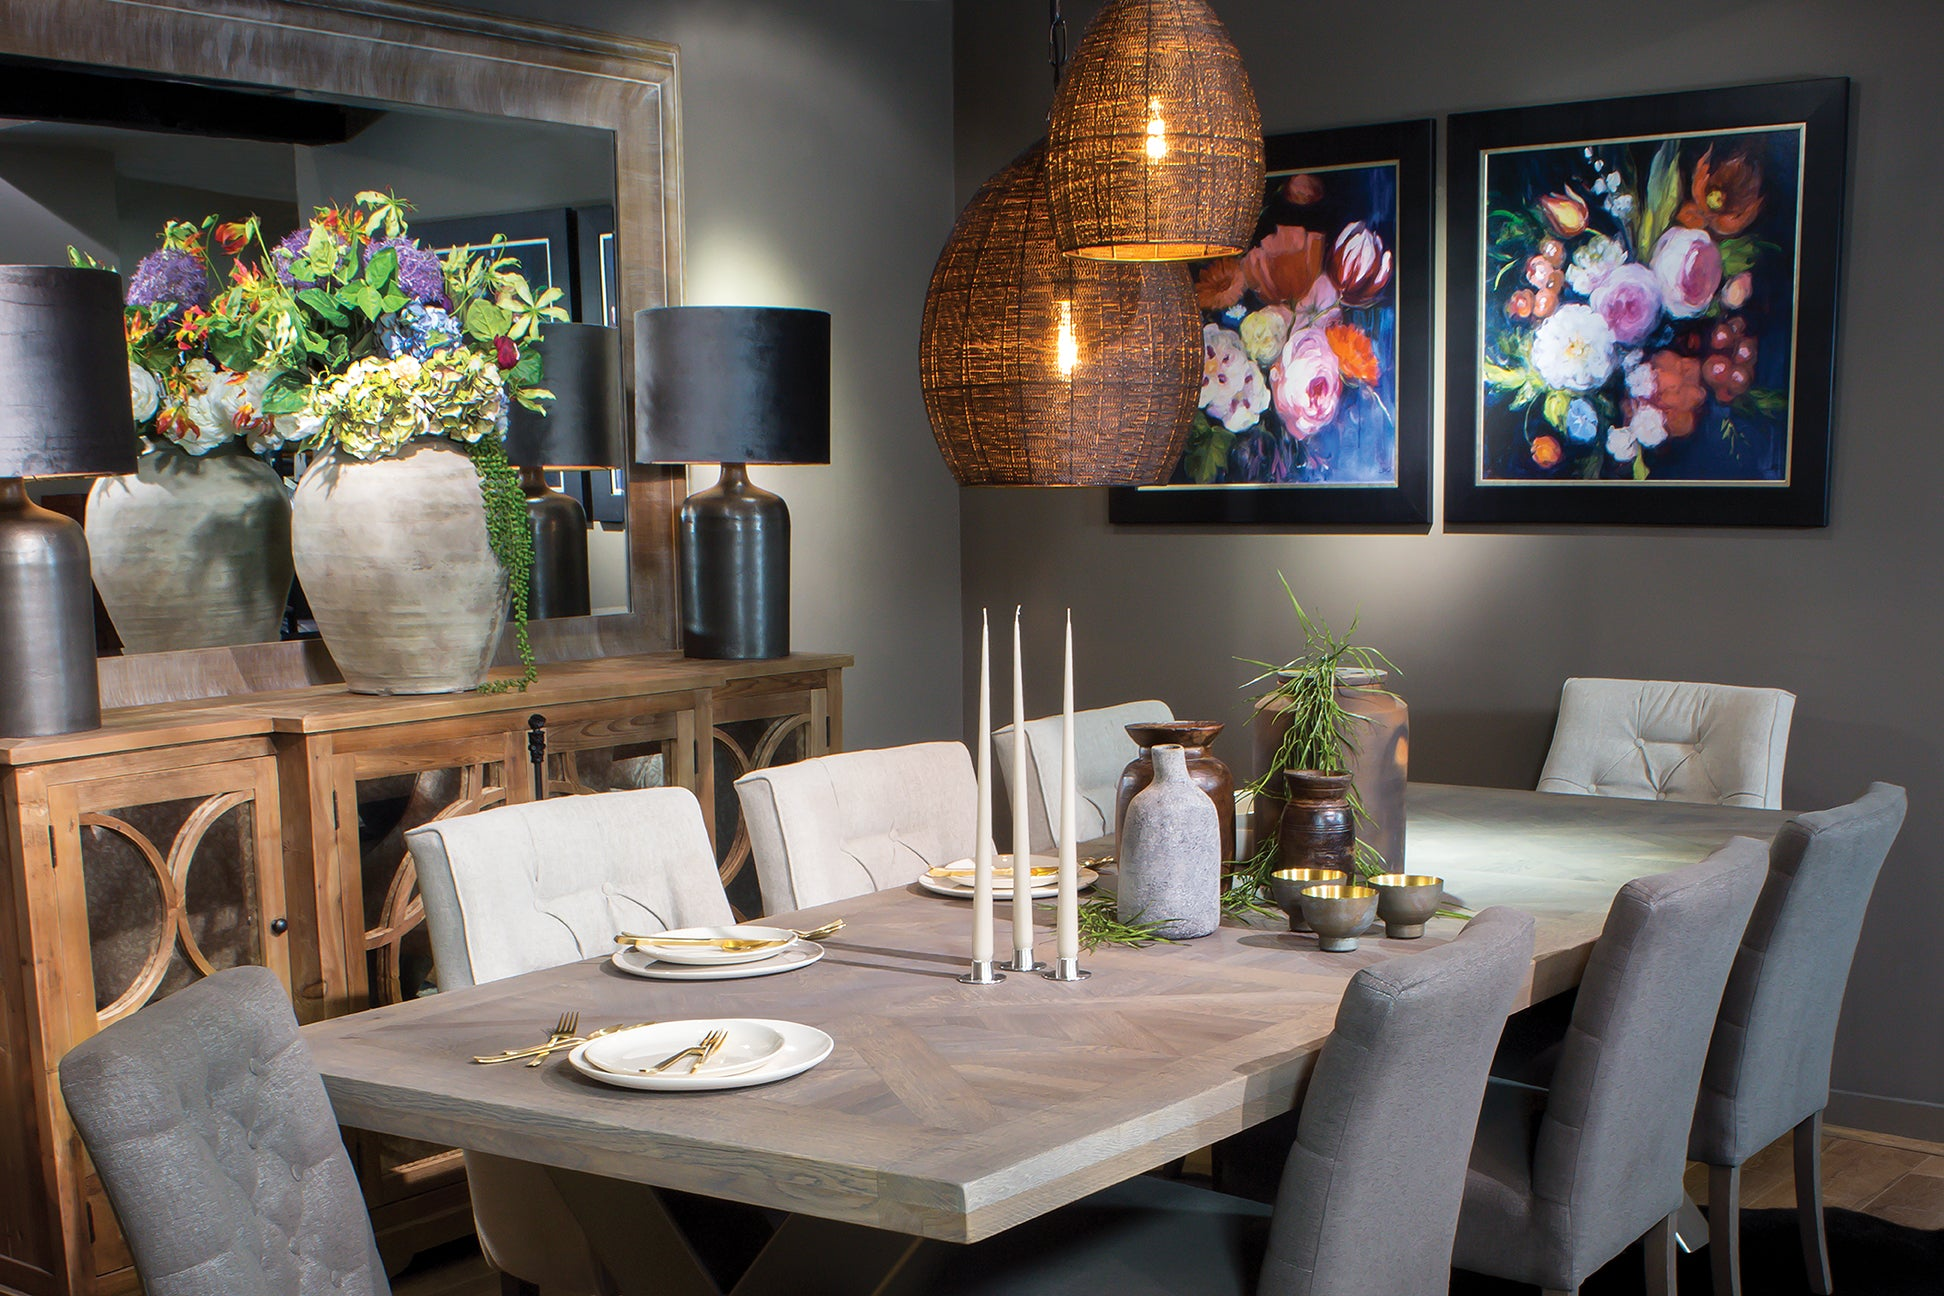 Our Dining Chairs Are Available In A Range Of Styles All Made With Hardwood Frames And Legs We Have Palette Over 24 Colours Finishes For The